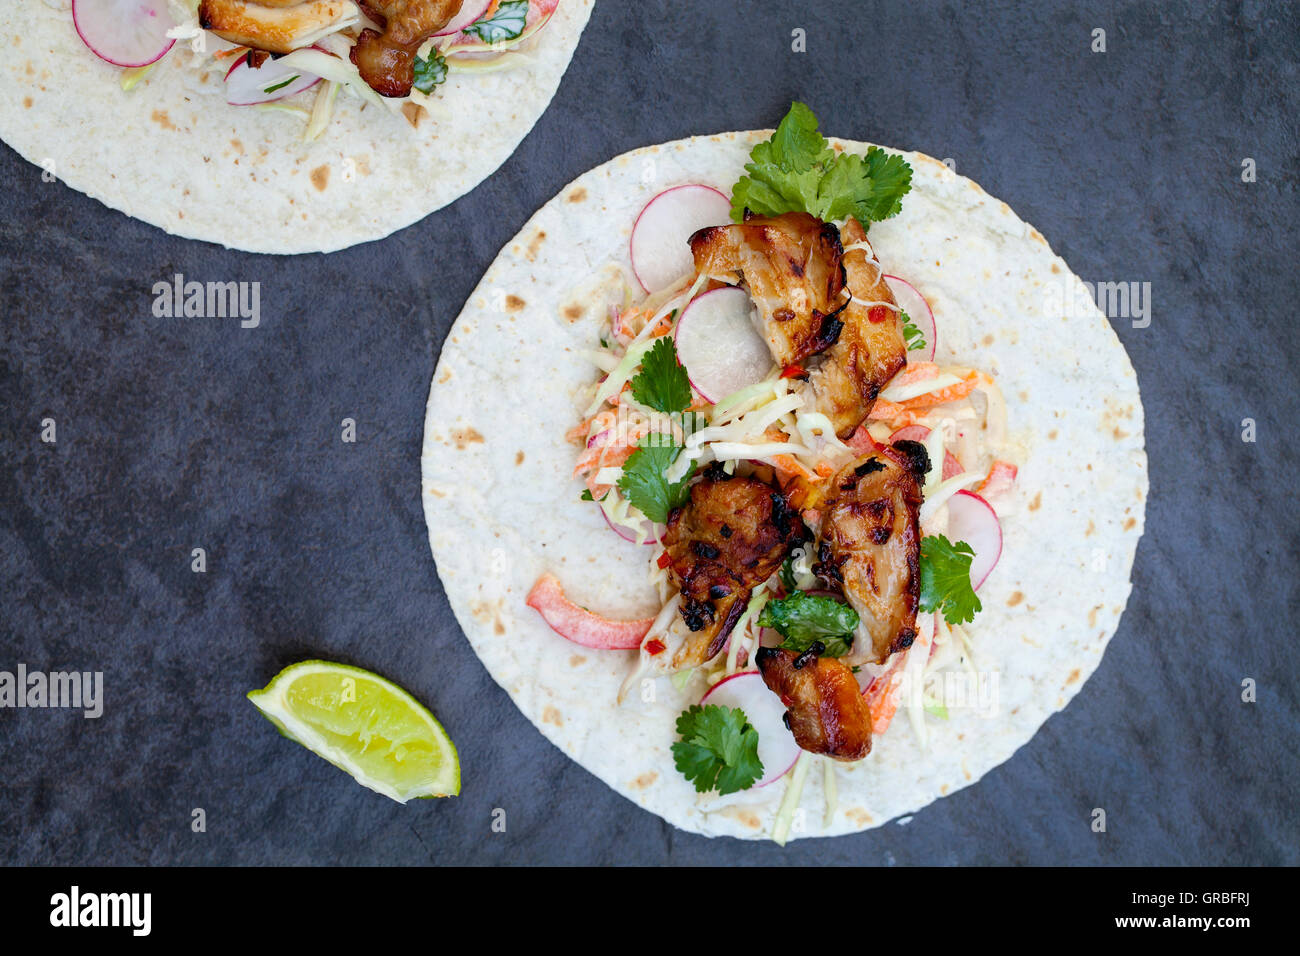 Soft tortillas with spicy chicken tighs - Stock Image